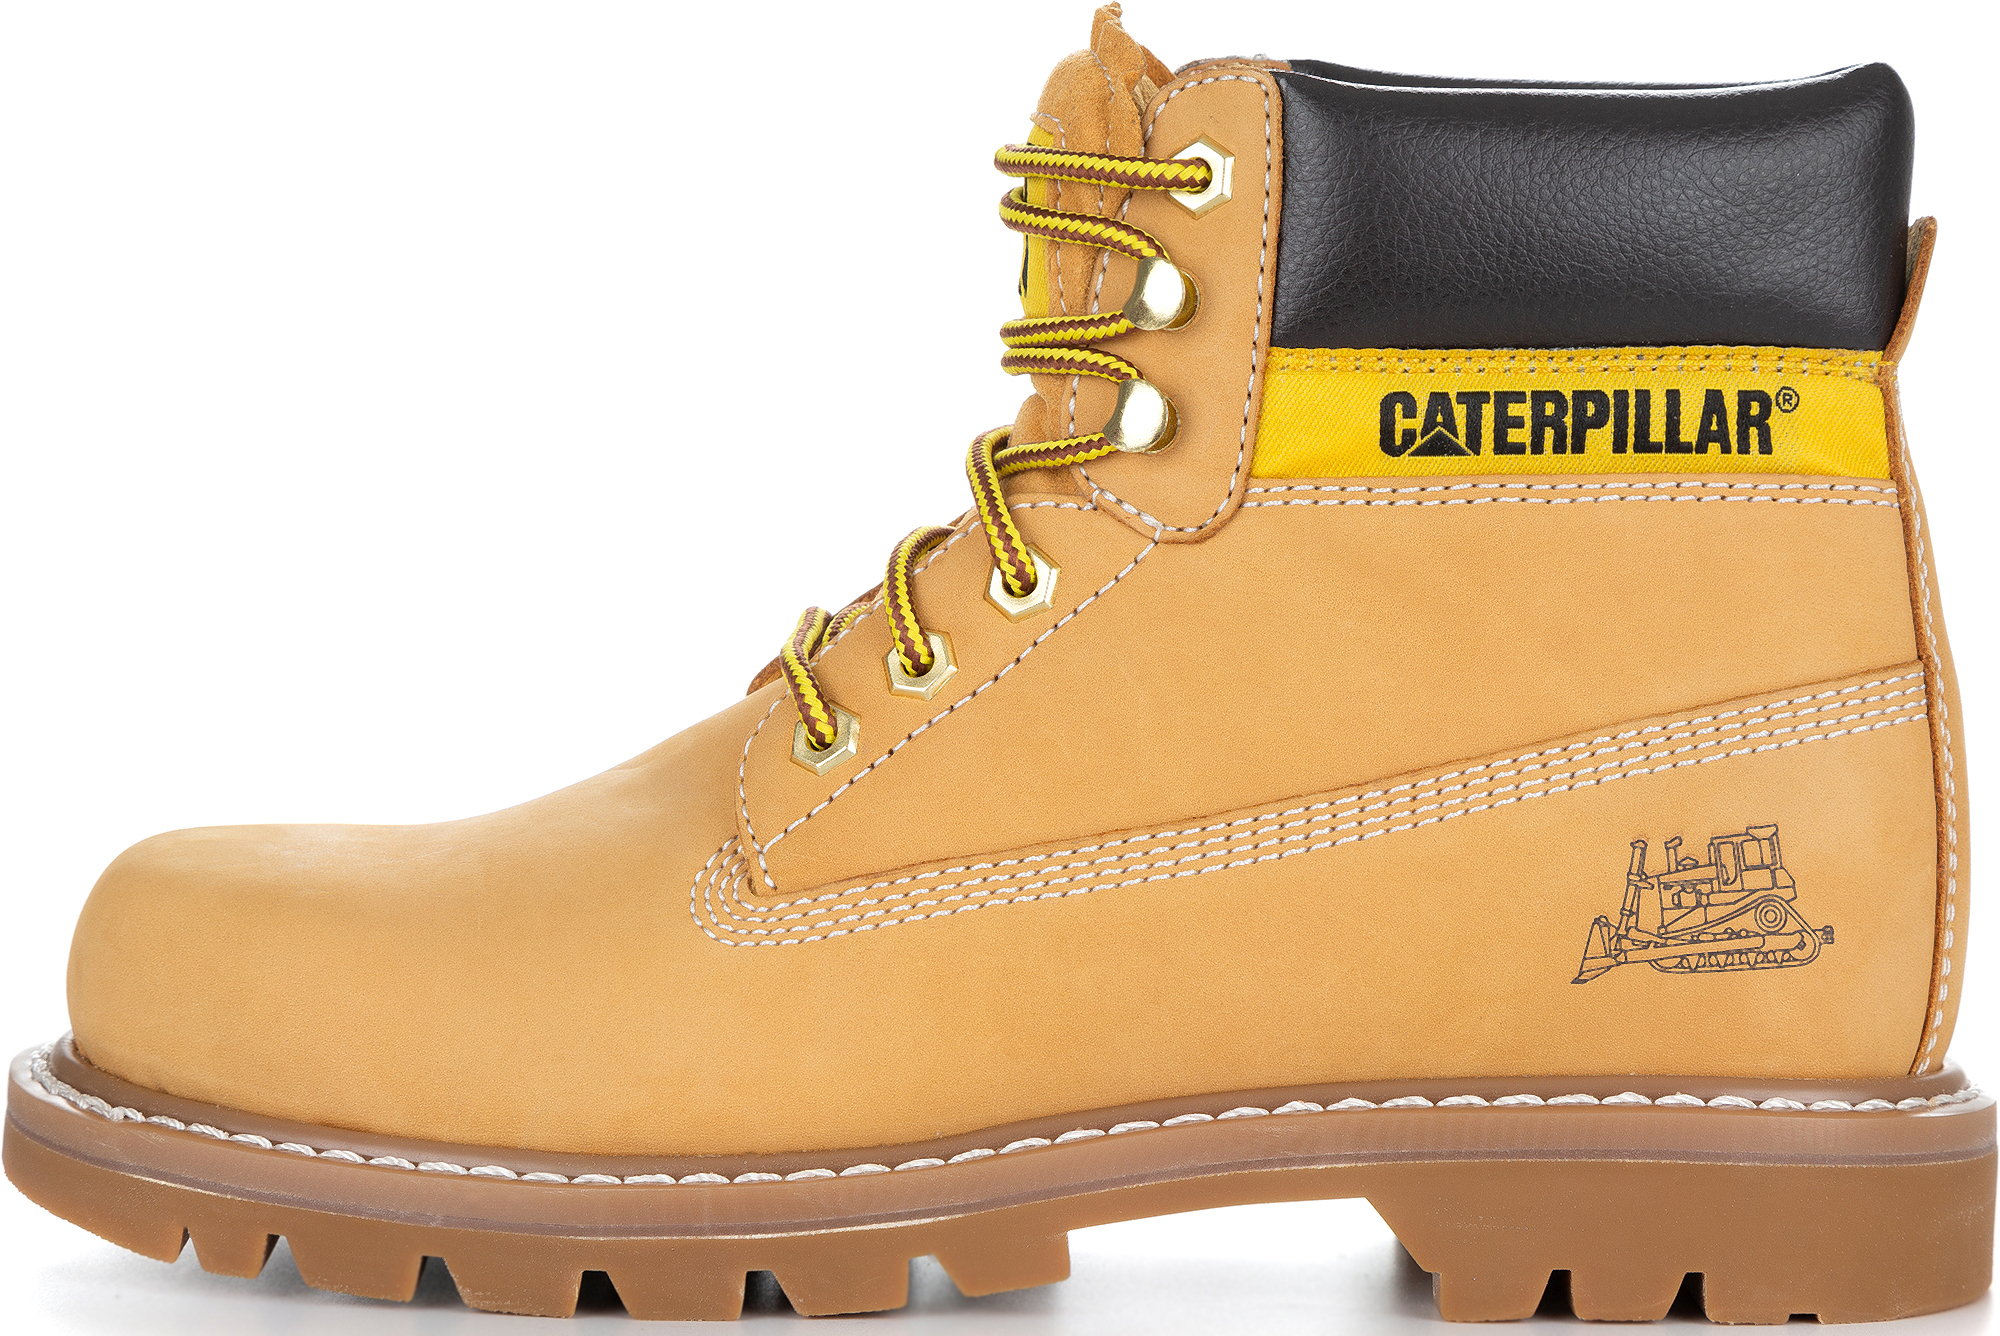 Caterpillar Ботинки мужские Caterpillar Colorado, размер 43 colorado avalanche